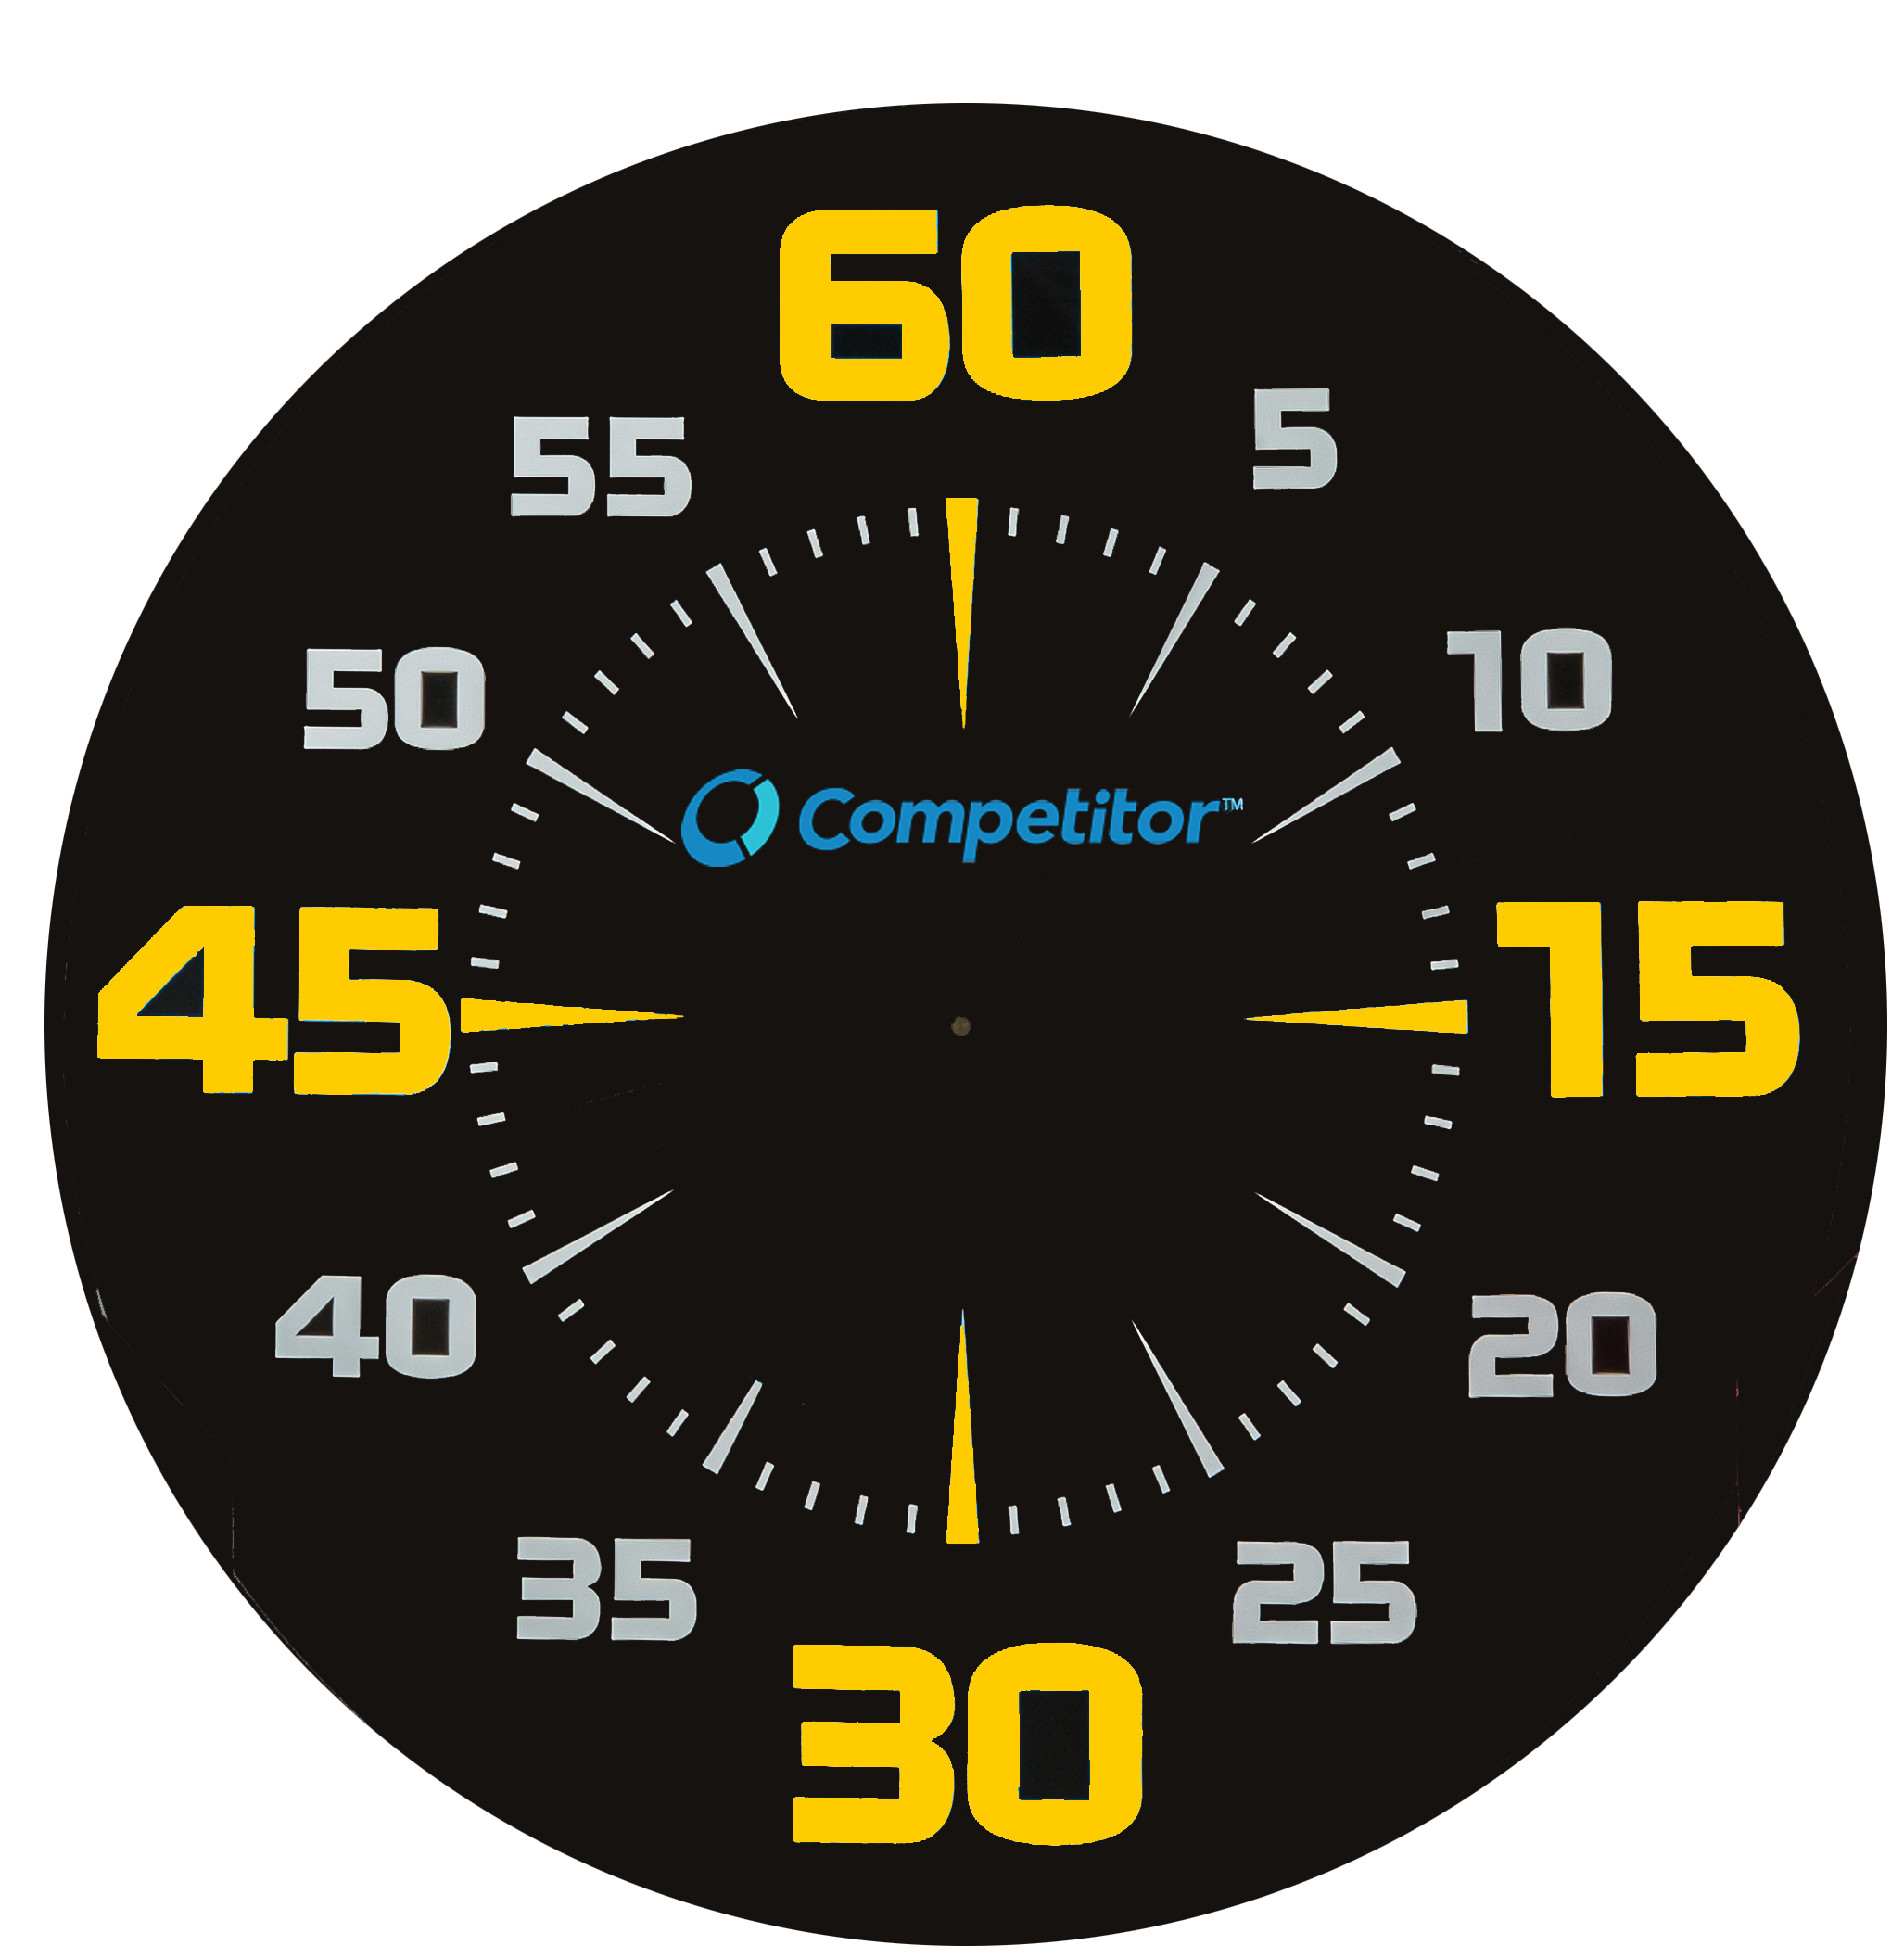 Worksheets Parts Of A Clock Face pace clocks competitor swim black clock face with vivid white and yellow numbering large easy to see quarter minute numbers